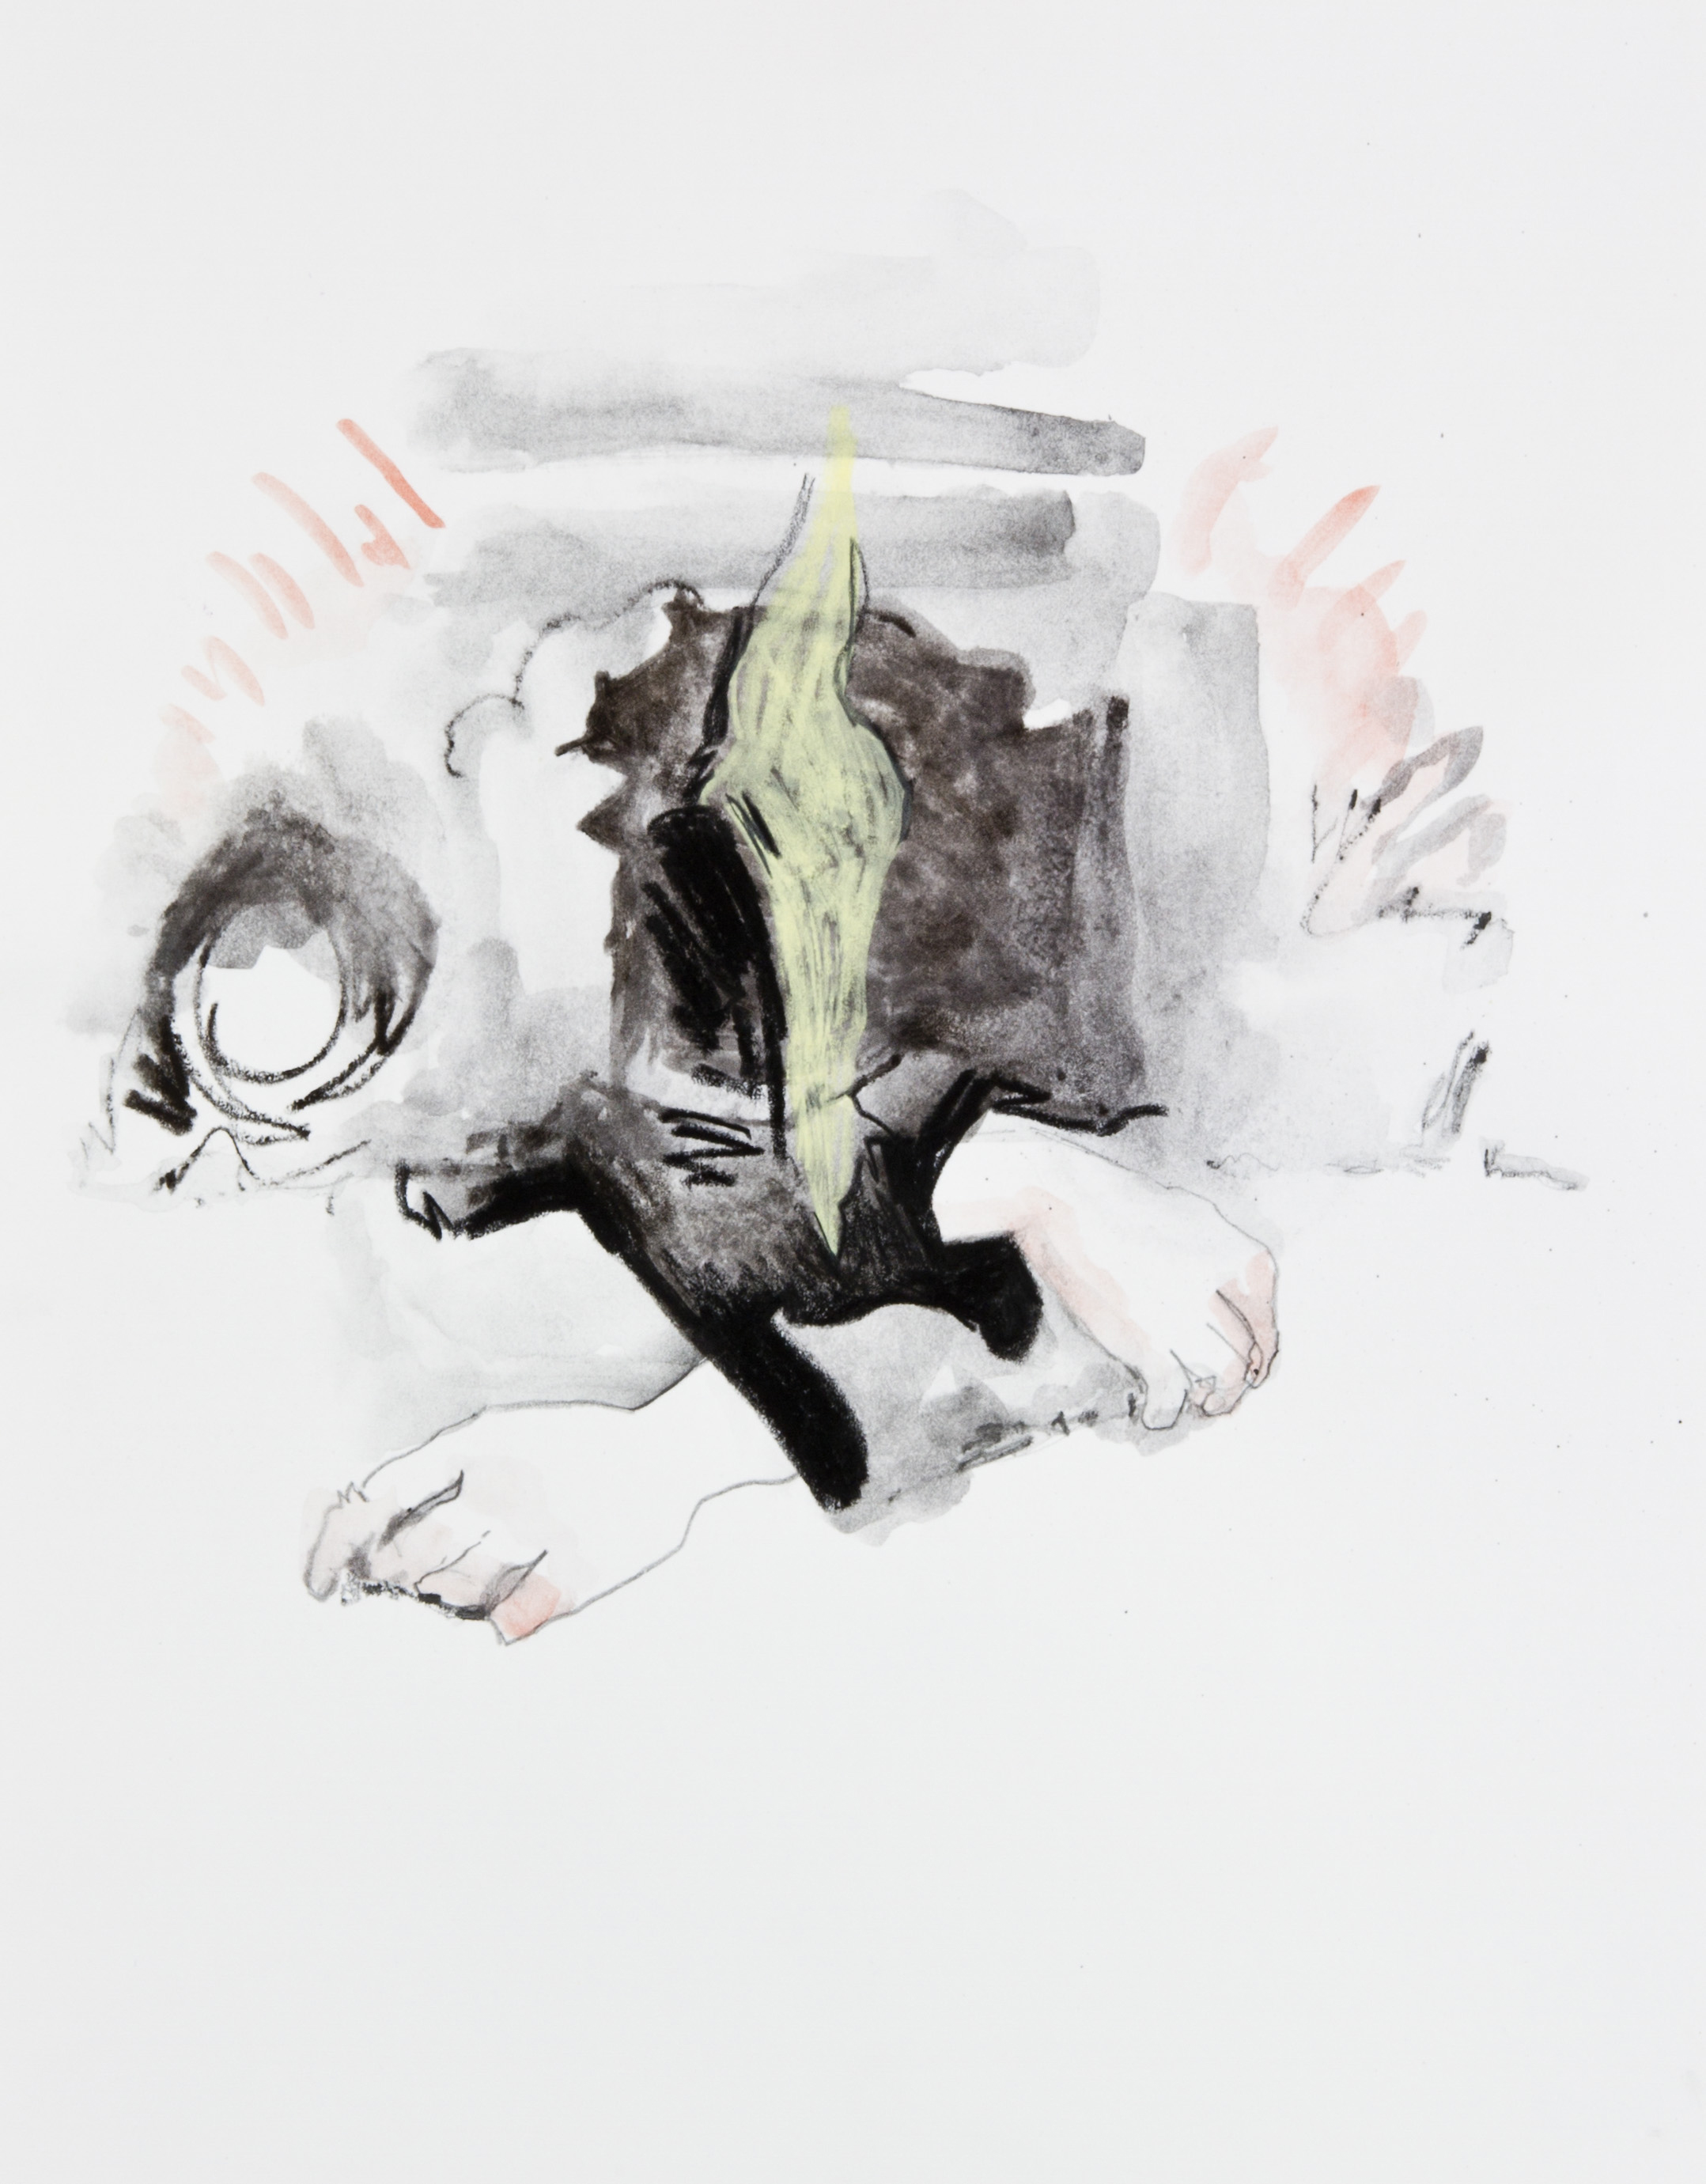 A Inner Action, 2013, graphite, crayon and watercolor pencil on paper, 11x14 inches